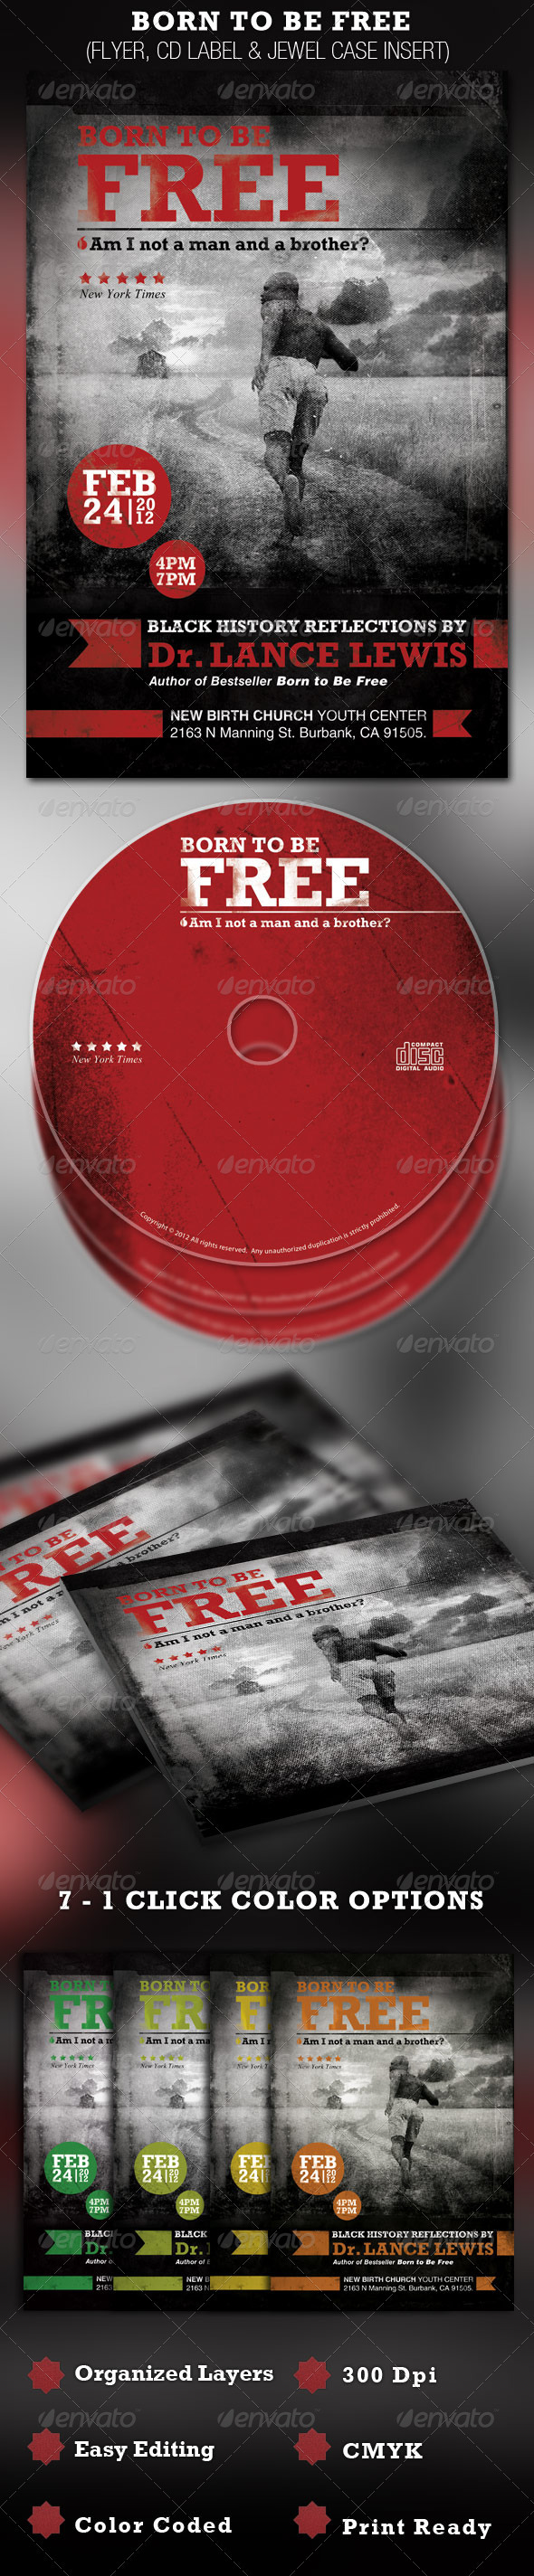 GraphicRiver Born to be Free Black History Flyer and CD 1583299